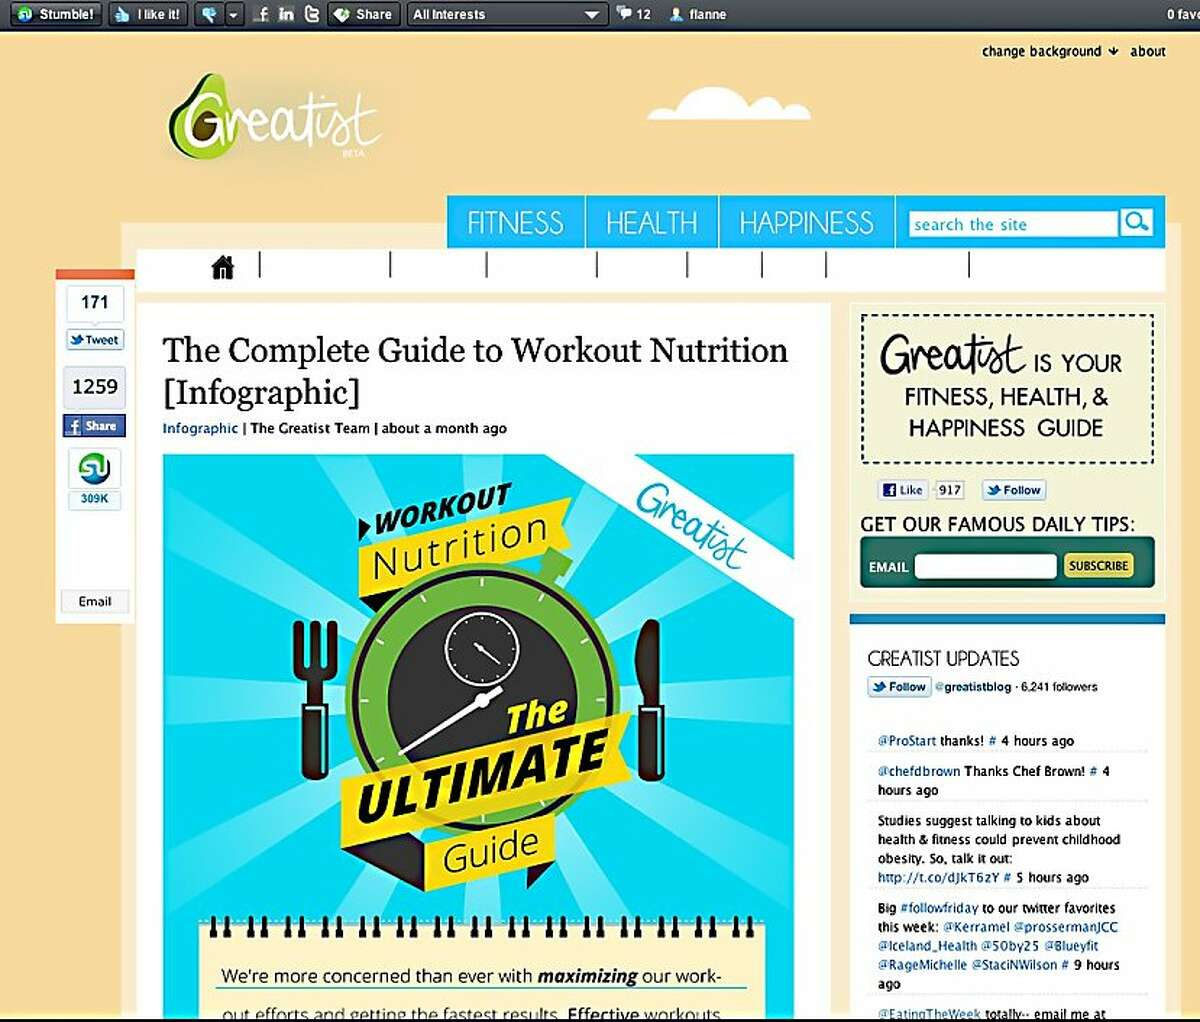 A screenshot from Stumbleupon.com, a site that takes the user to random sites based on interests checked in their membership profile.